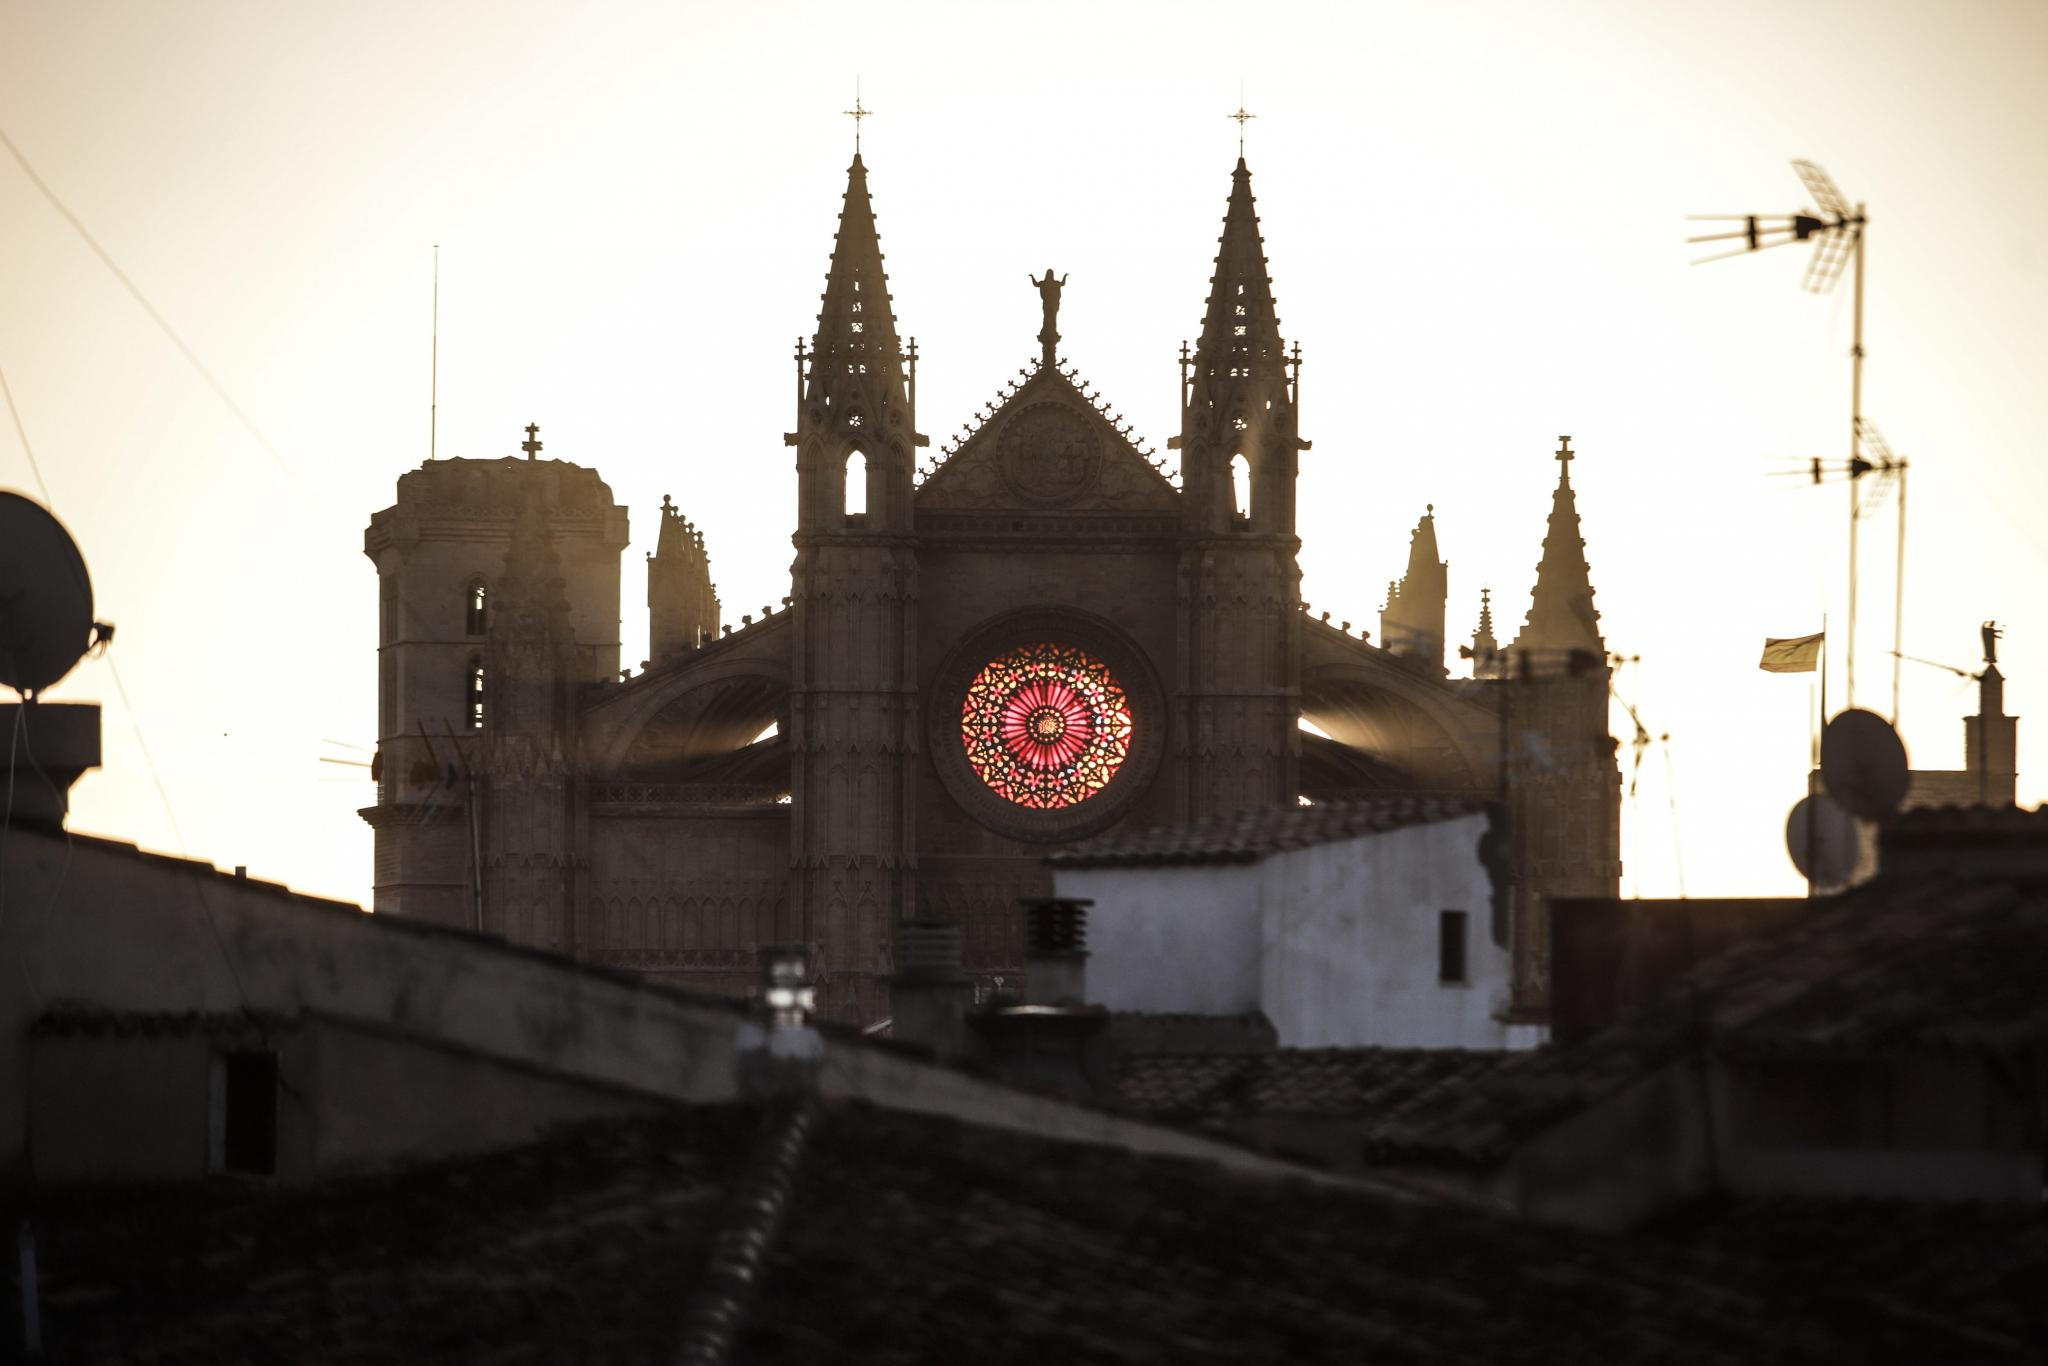 The winter solstice sun in alignment with the rose window